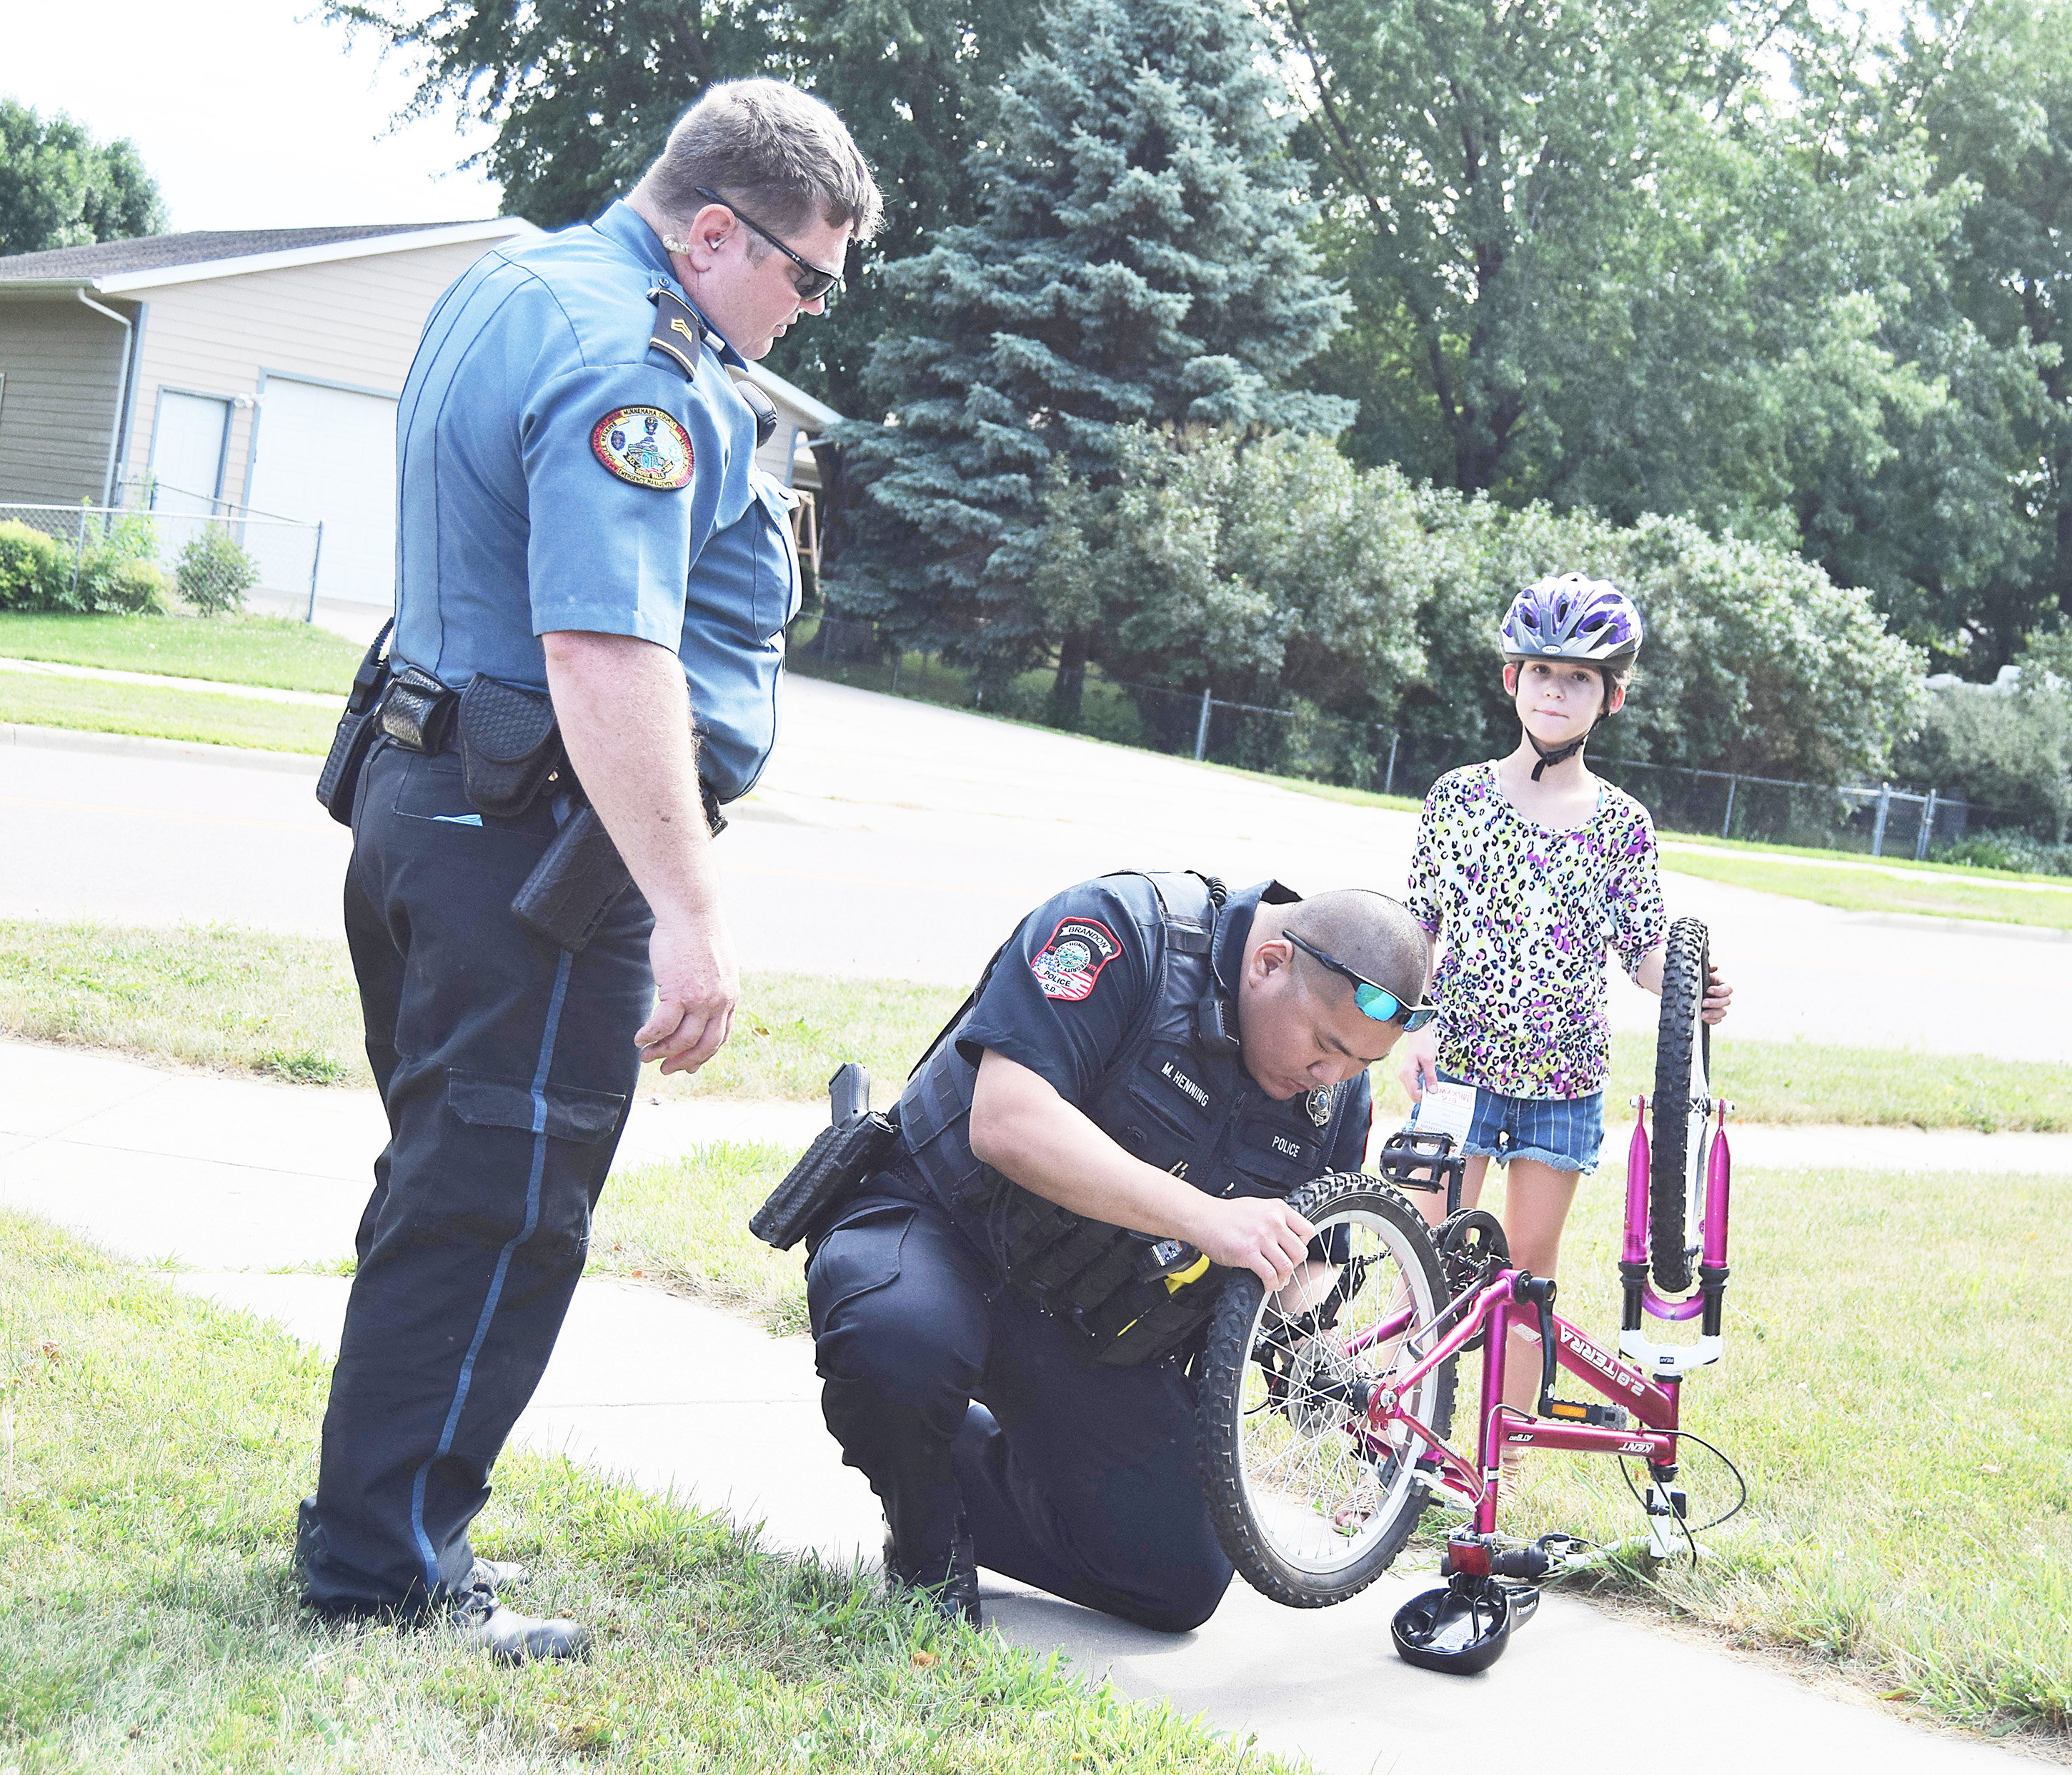 "<span style=""font-size:11px;""><span style=""font-family:arial,helvetica,sans-serif;"">Brandon Police Officer Lee Henning and Sgt. Jason Story with the Minnehaha County Police Reserves came to the rescue of Alexis Wegner, 9, when she had issues with the chain on her bicycle. Along with some assistance in getting her bike into commission, the youngster also scored a free ice cream ticket for wearing her helmet. <strong>Jill Meier/BV Journal</strong></span></span>"